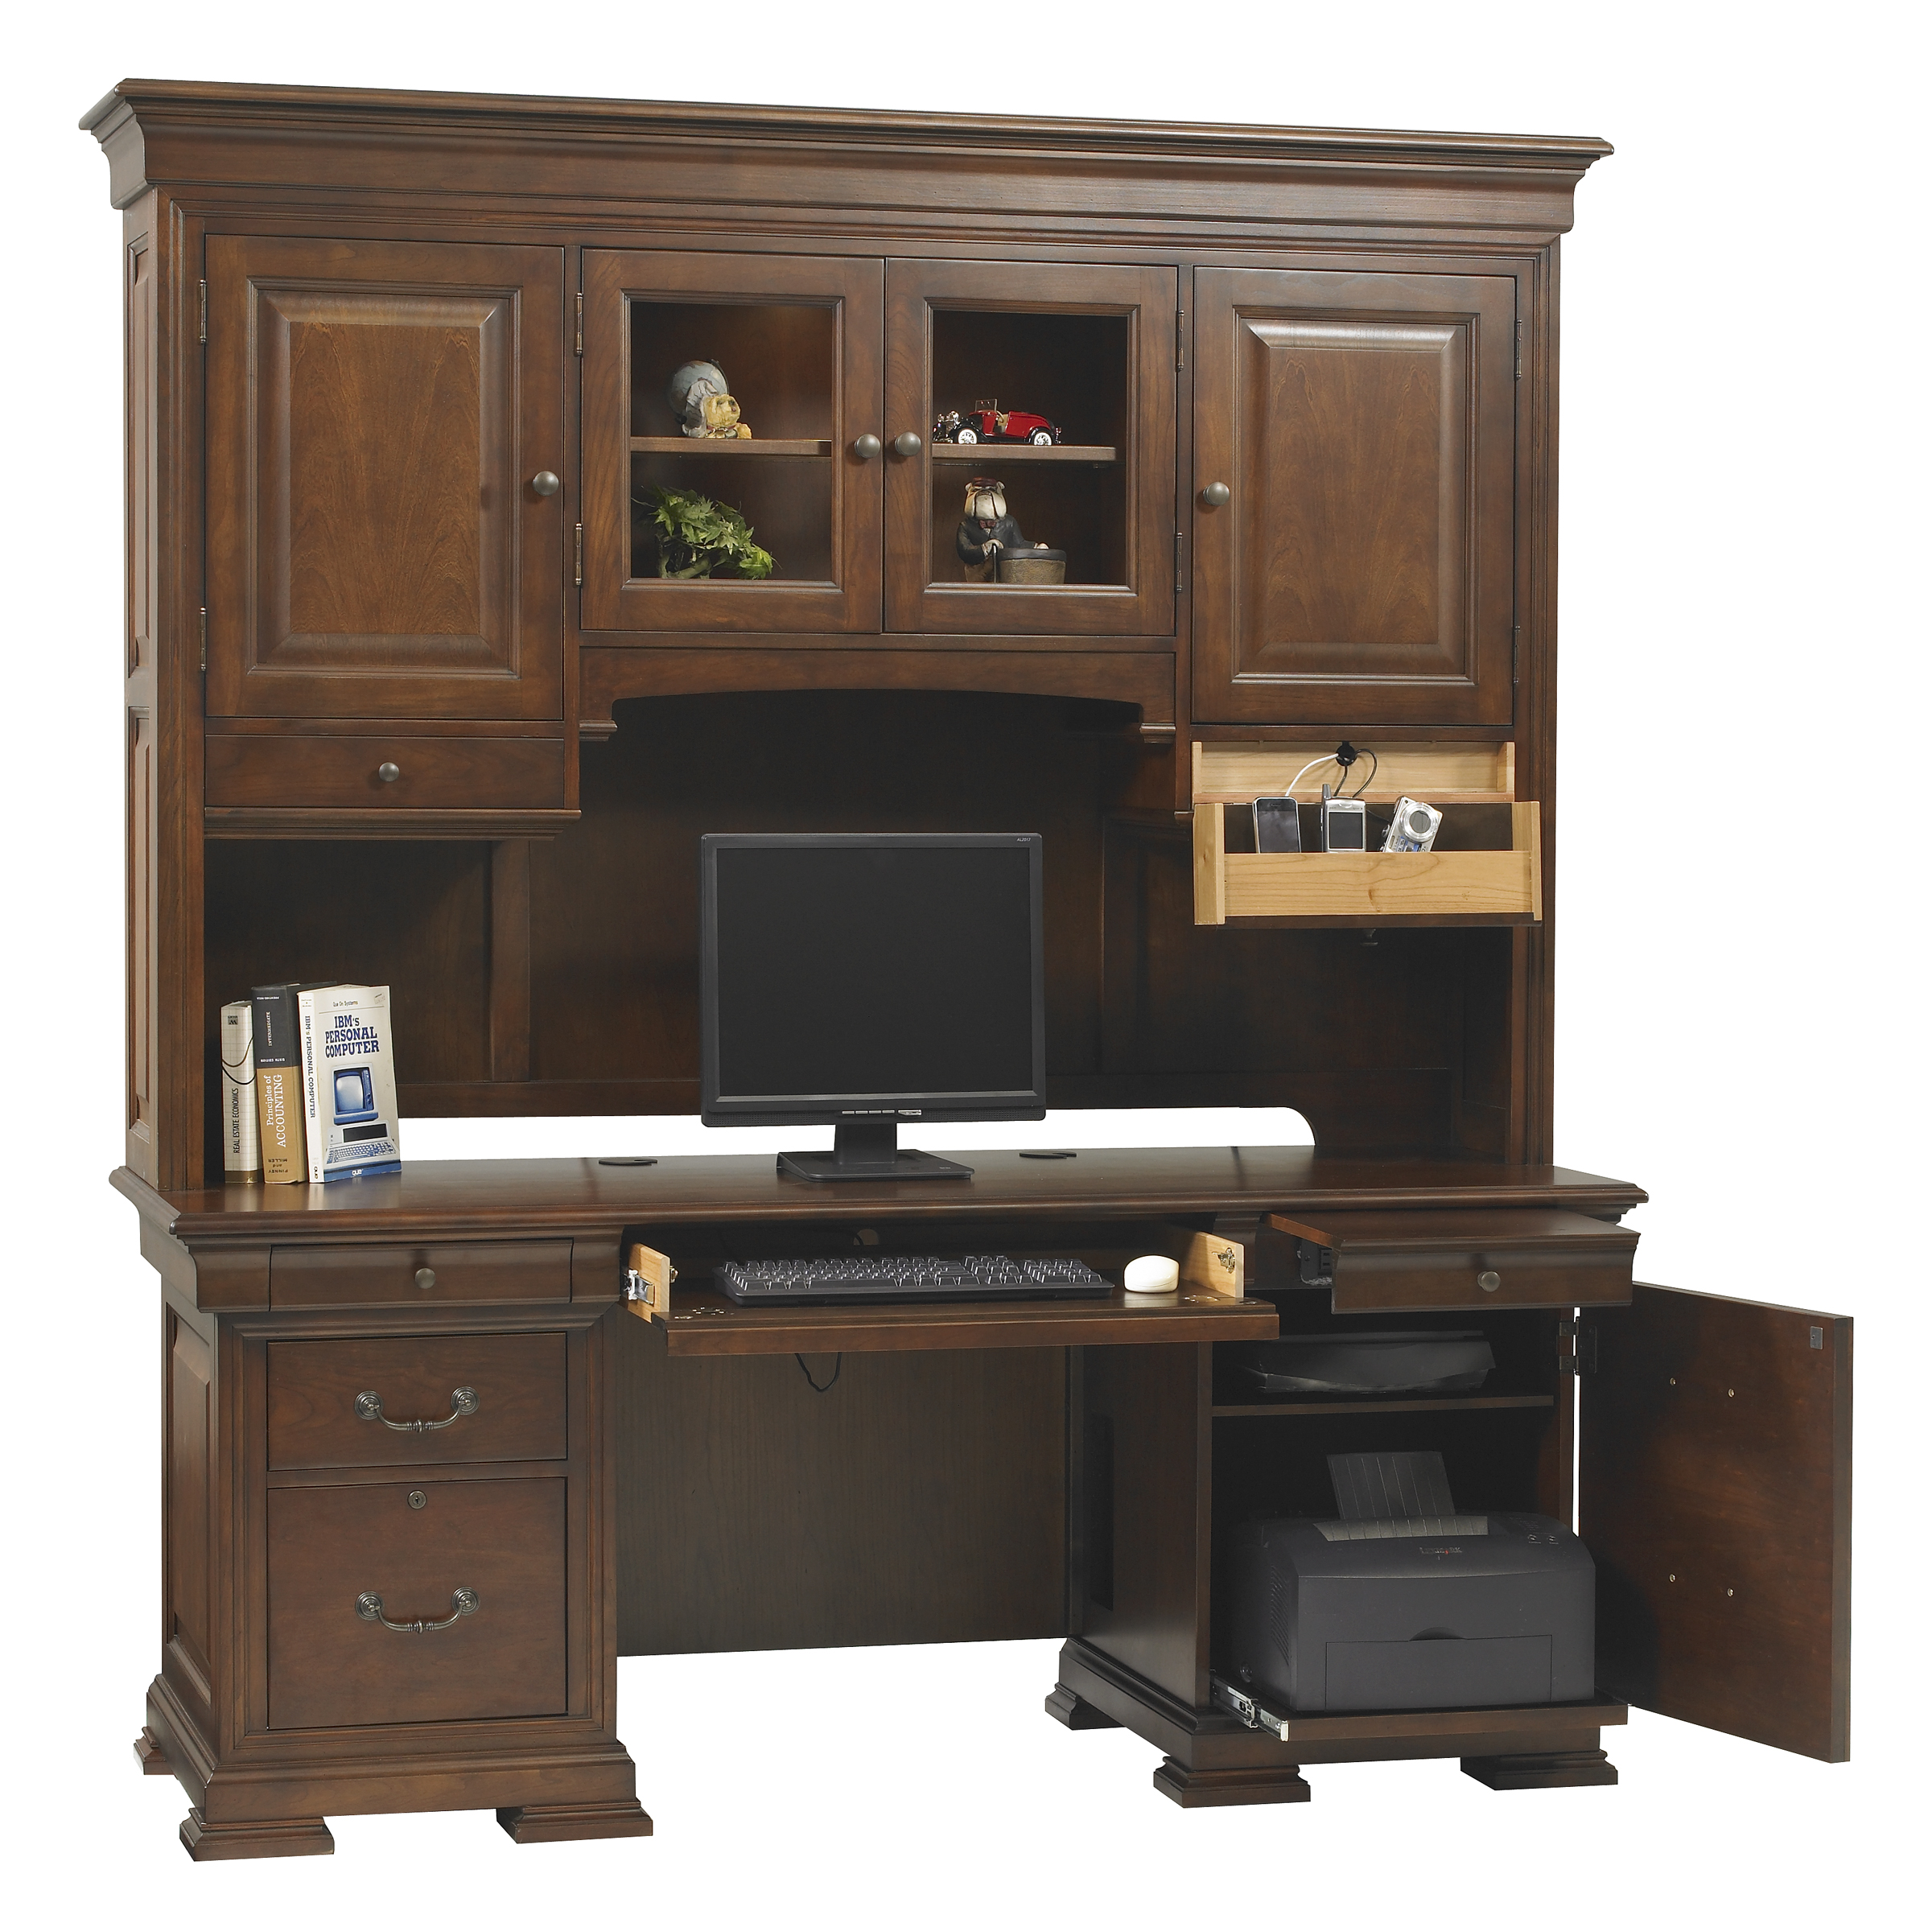 Plans For Computer Desk And Hutch Wooden Plans Diy Wood